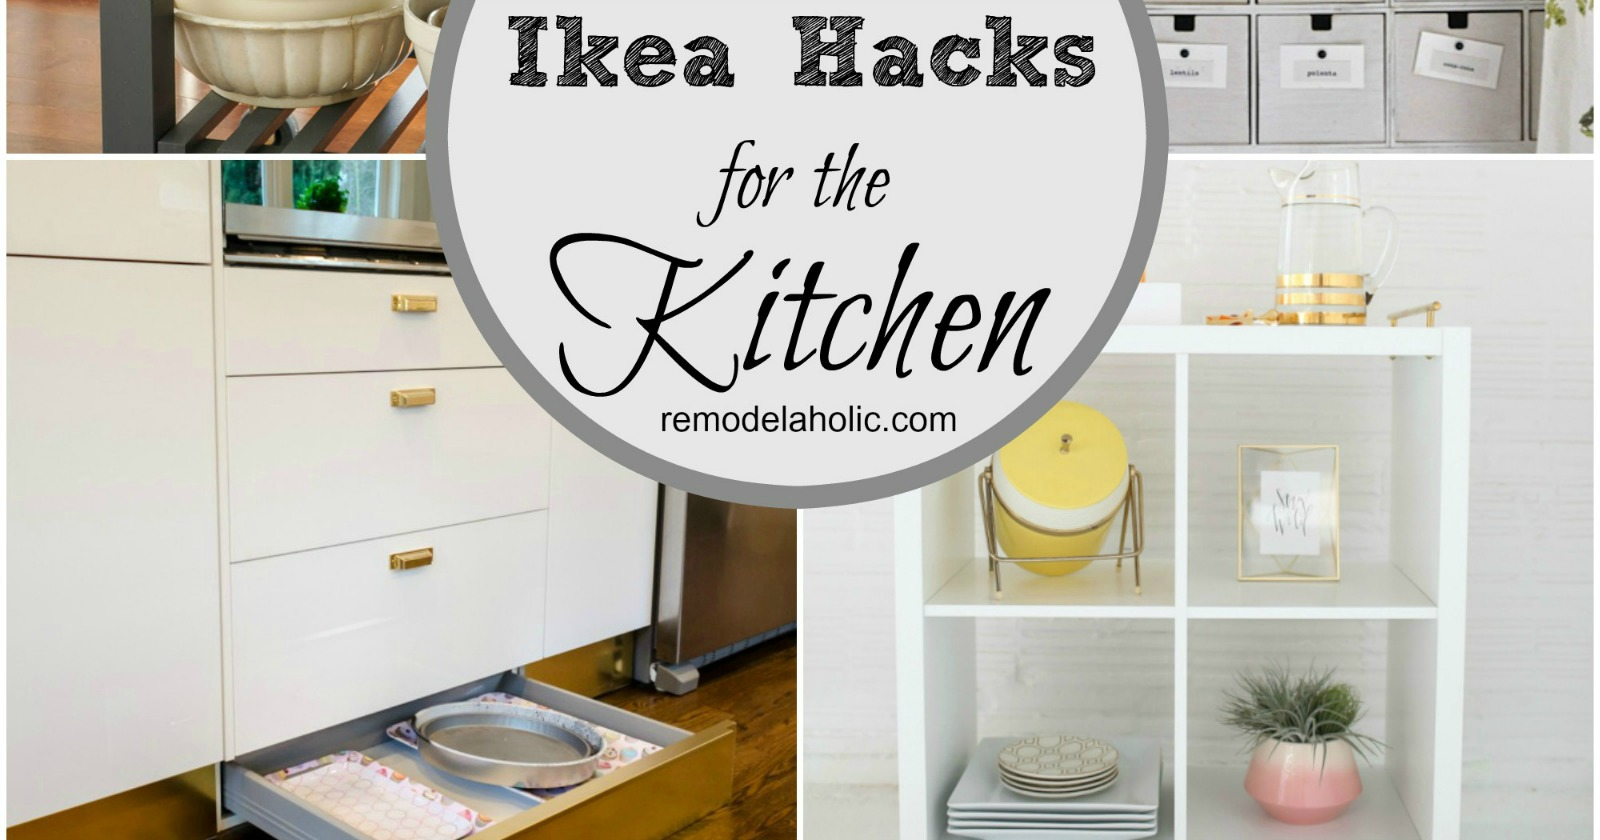 10 Ingenious IKEA Hacks For the Kitchen